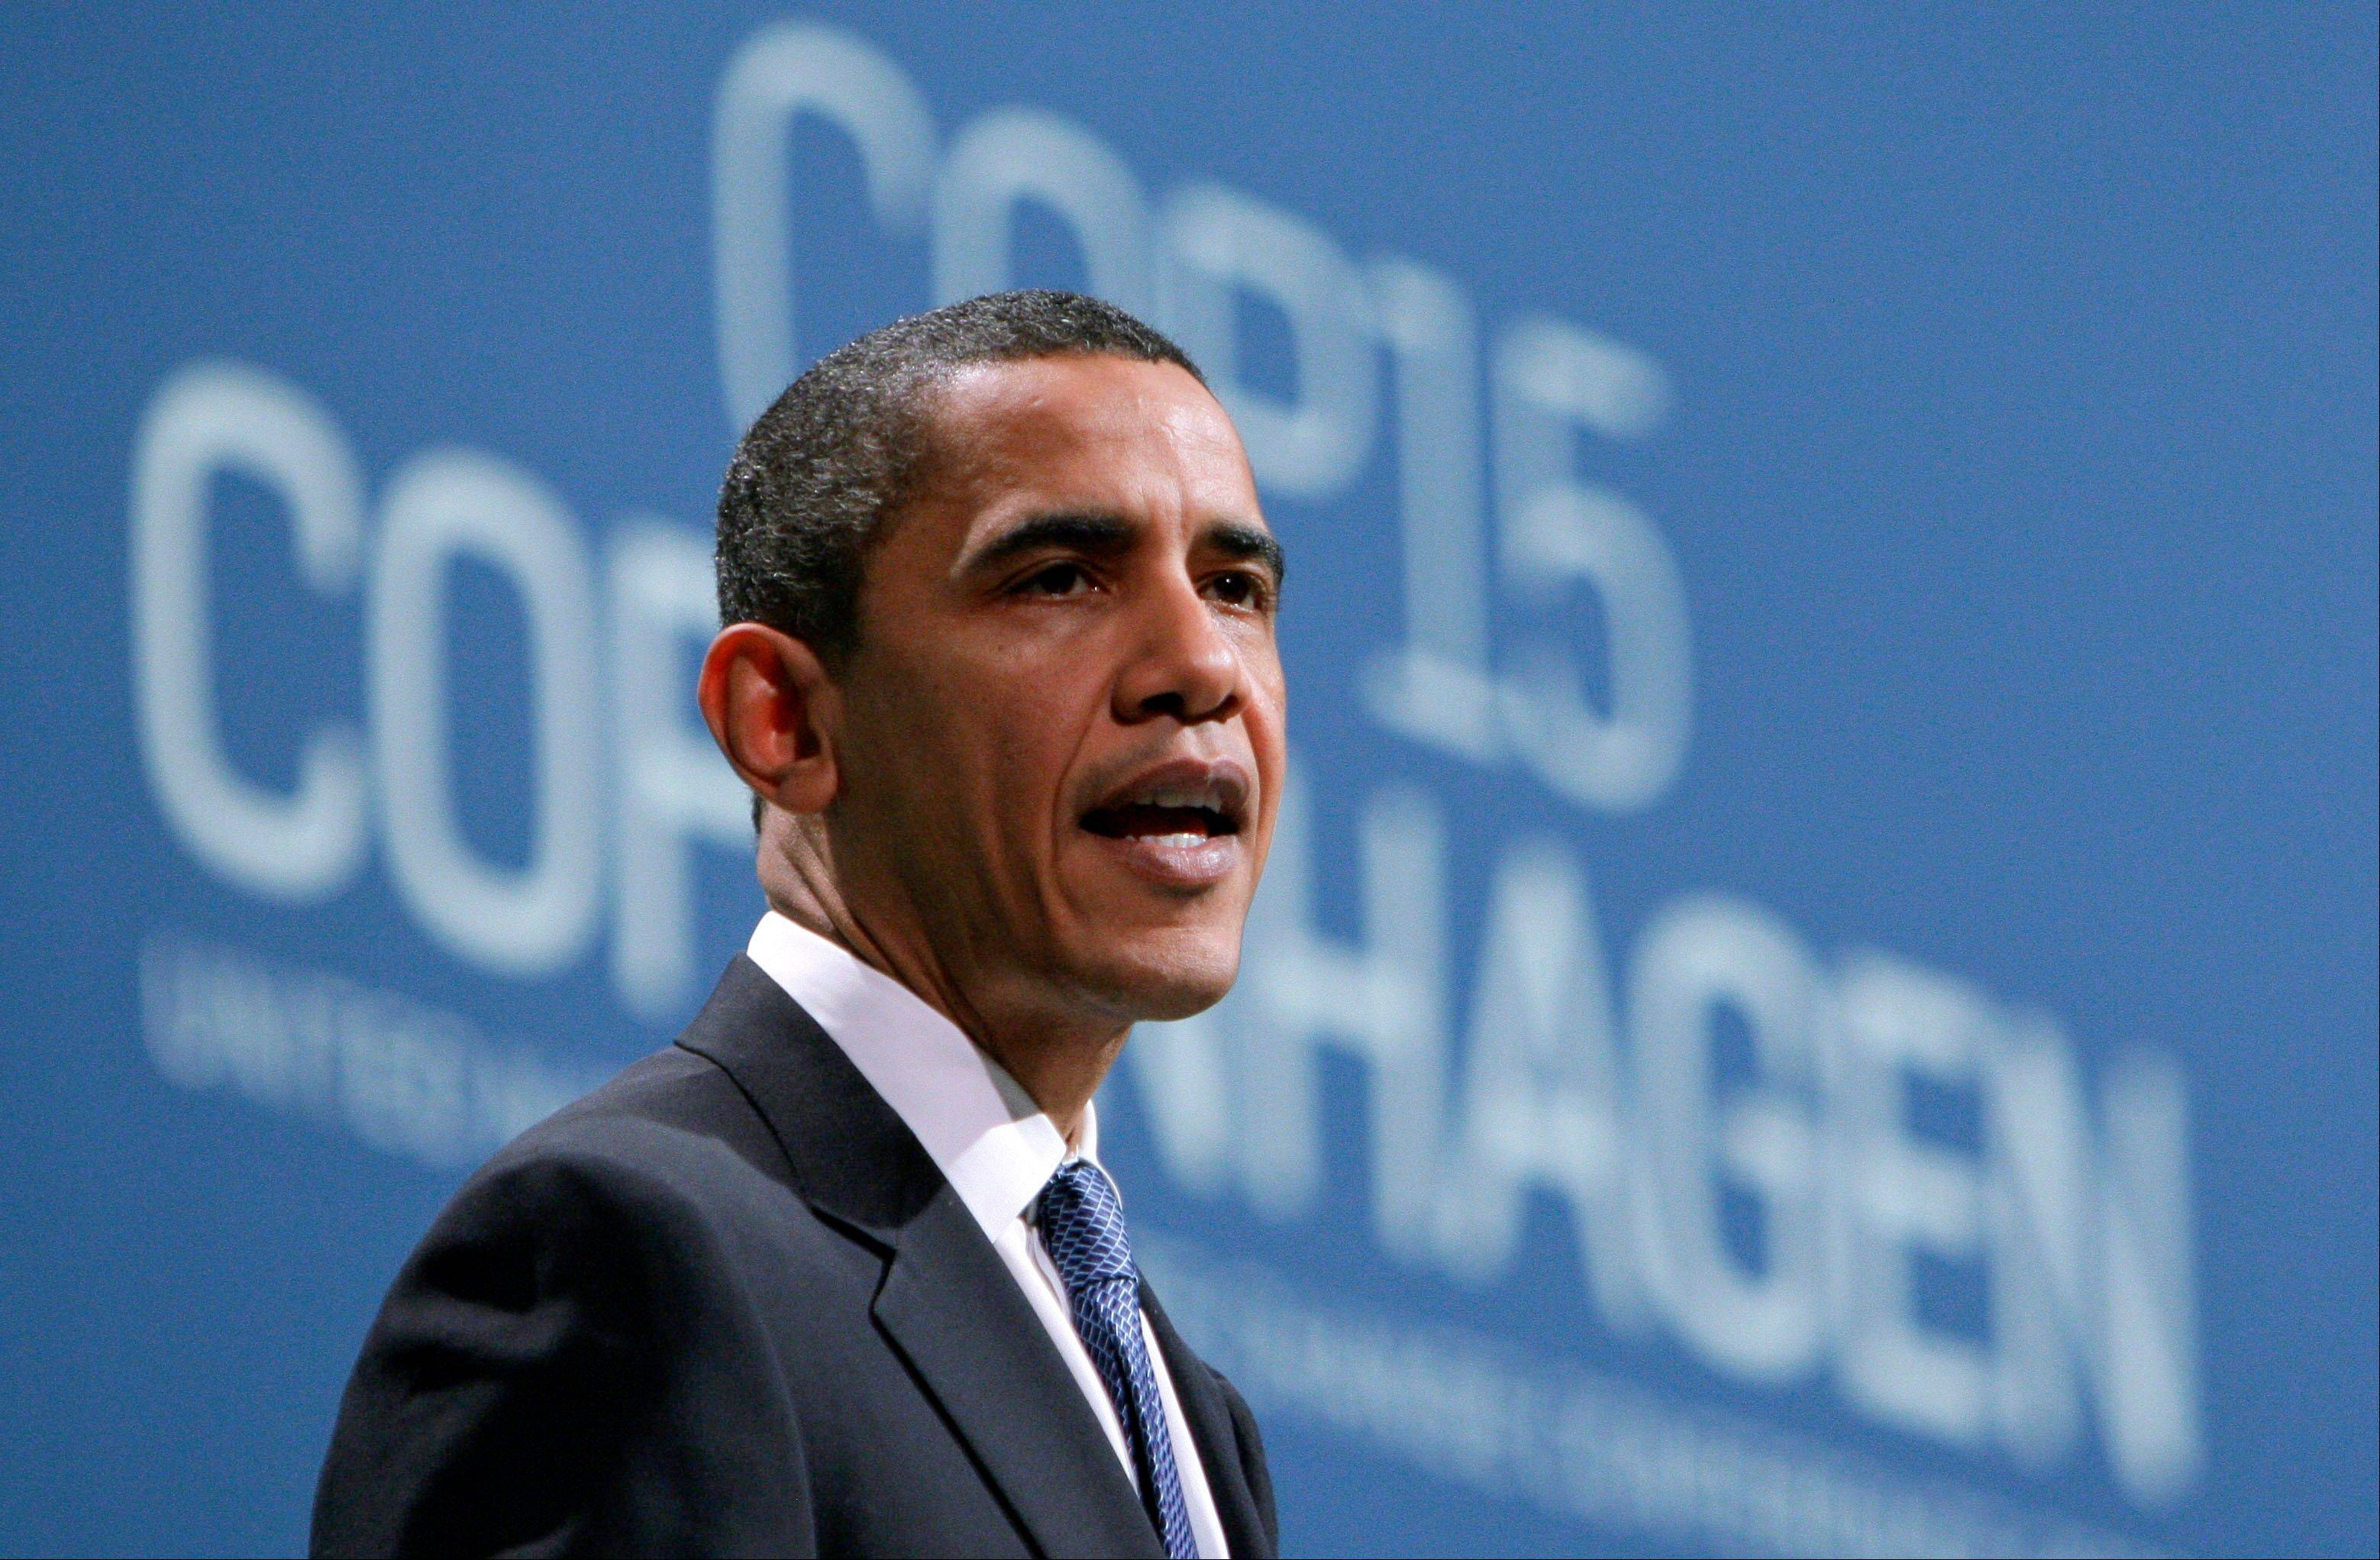 In this Dec. 18, 2009, file photo, President Barack Obama speaks at the climate summit in Copenhagen, Denmark. Three topics are noticeably missing from the Democrats� meeting: Climate change, economic stimulus and the massive bank bailout.